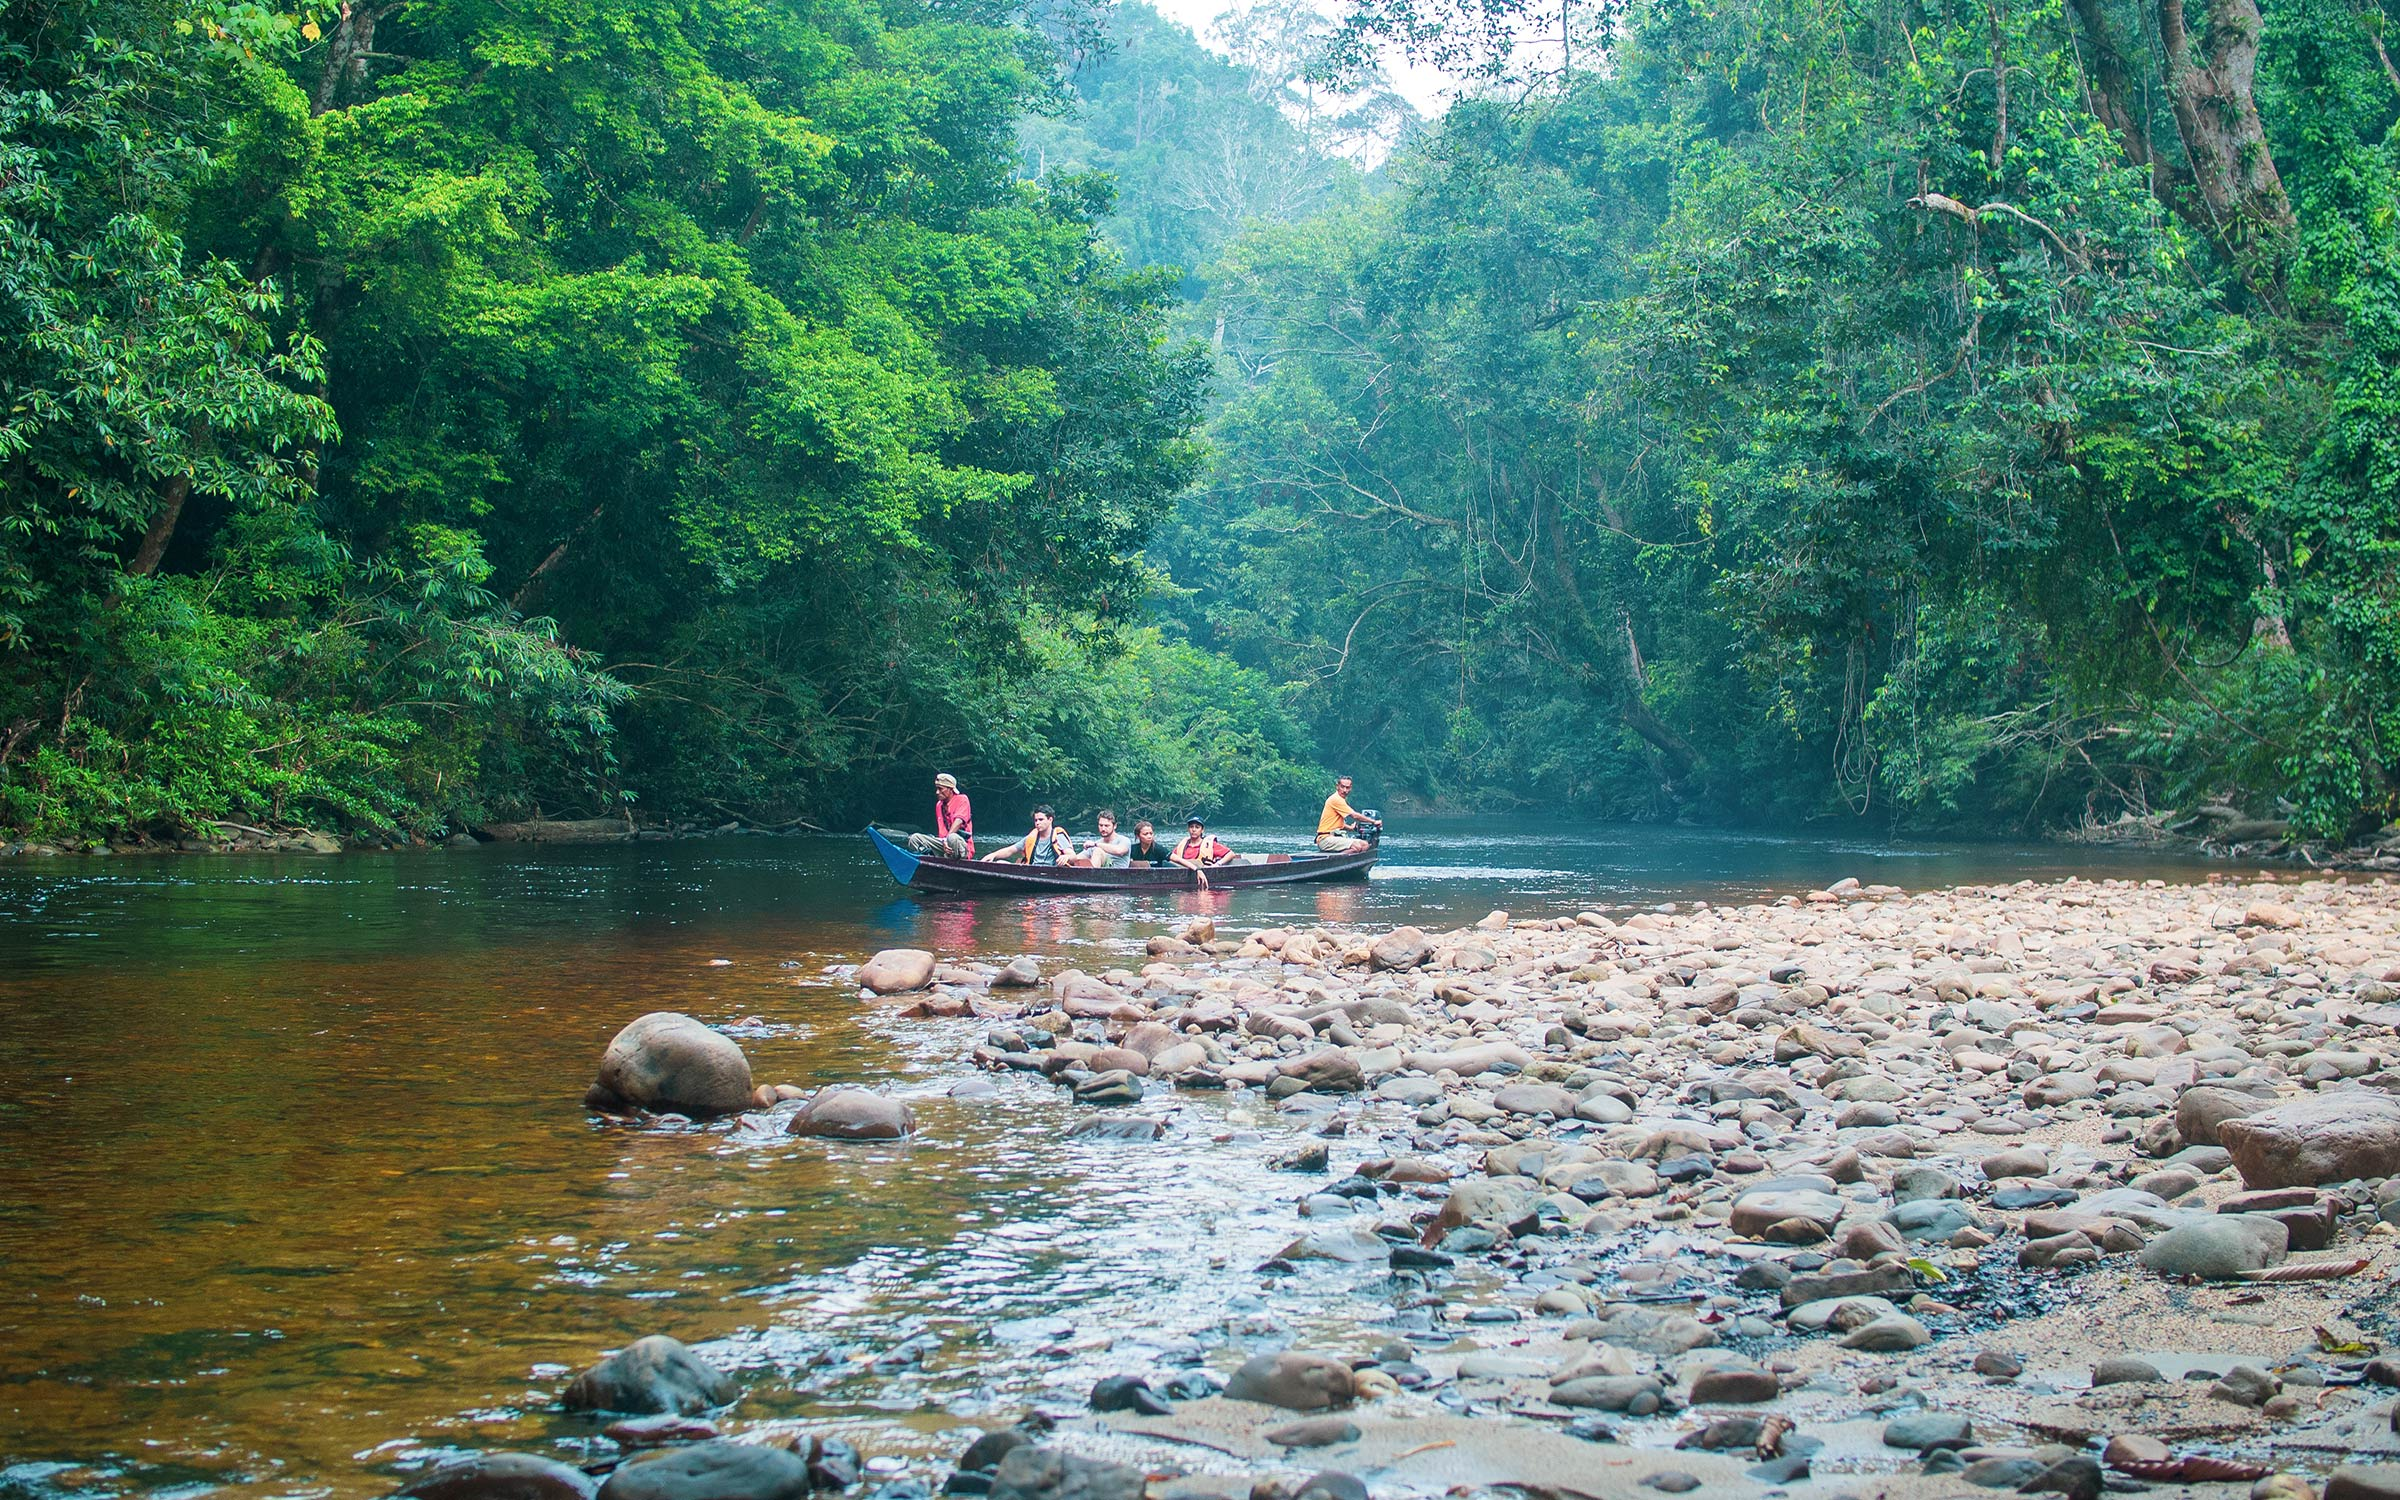 Top 5 Wildlife Destinations in Malaysia